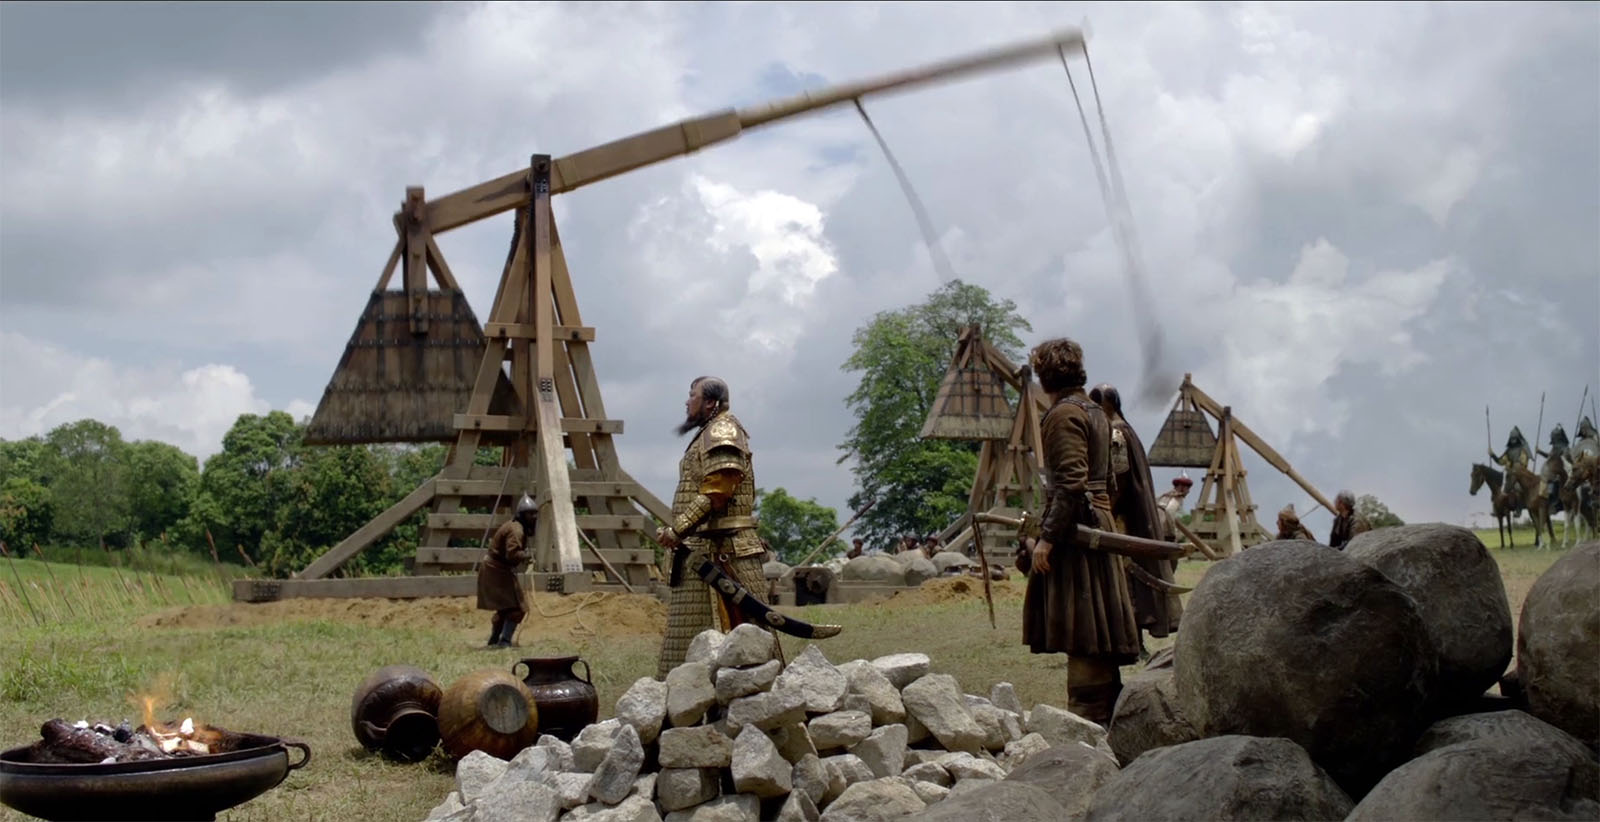 Trebuchet Firing from Marco Polo